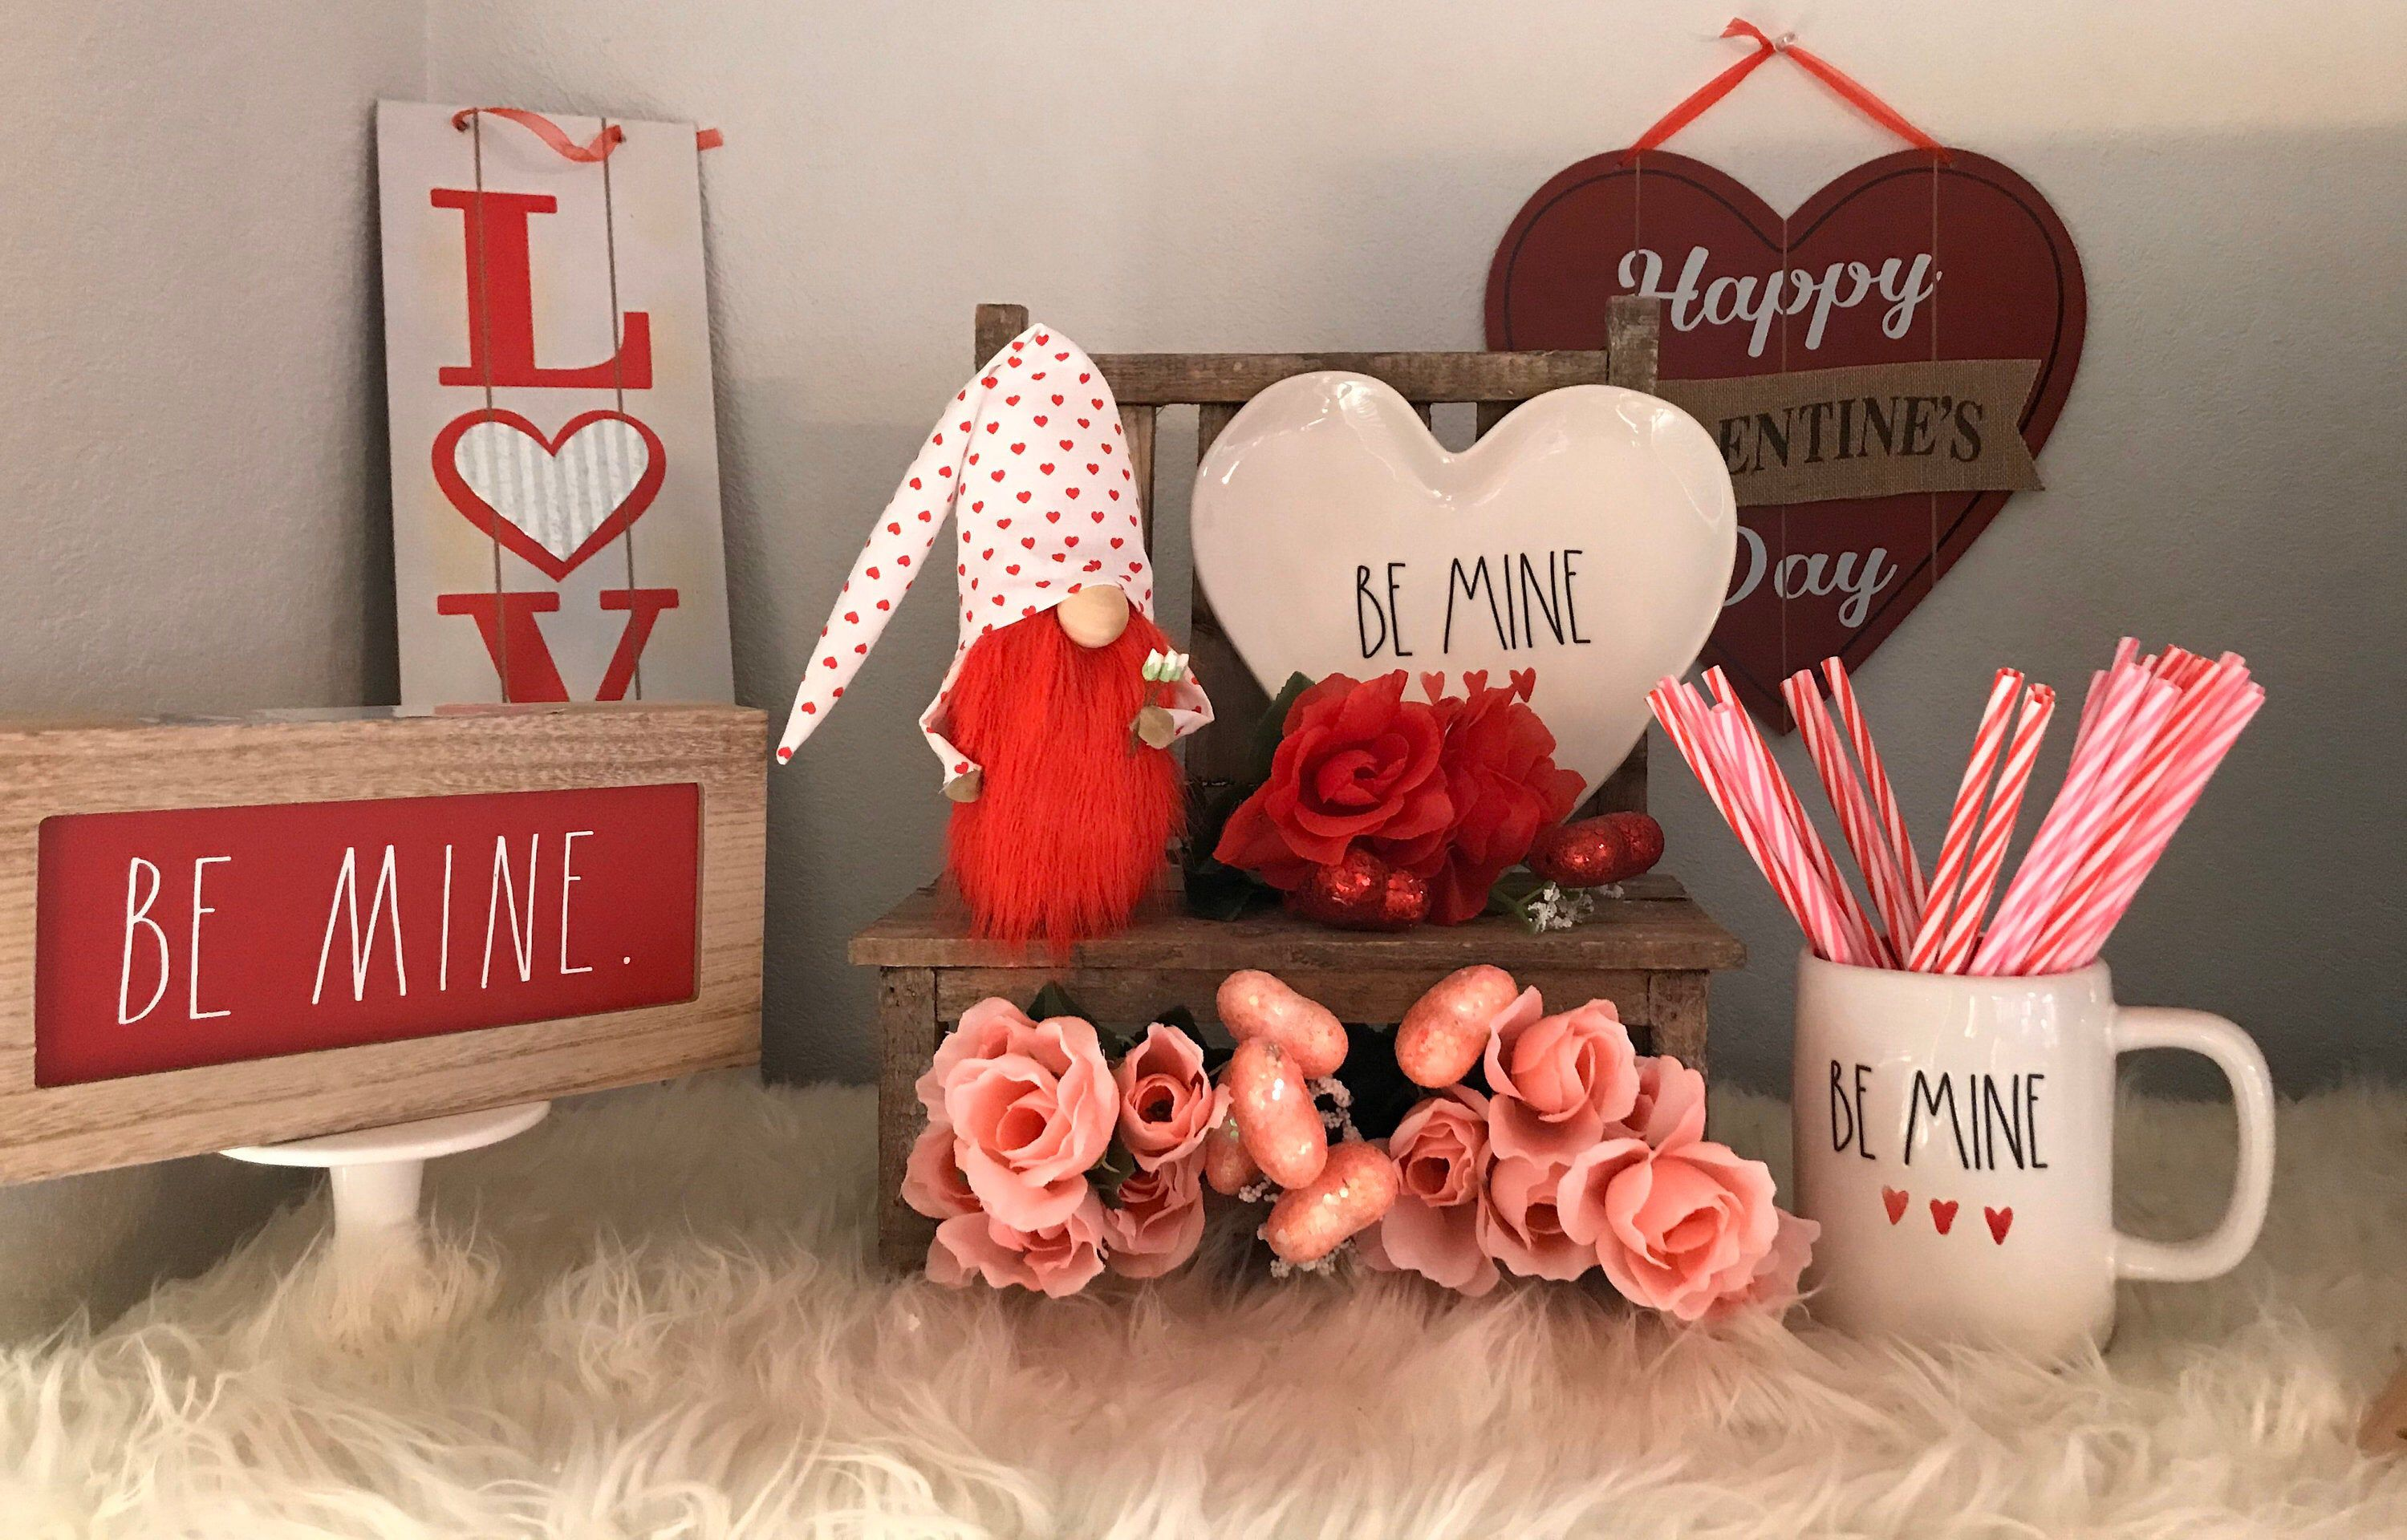 Excited To Share This Item From My Etsy Shop Valentines Gnome Love Gnome Roses Tomte Nisse Valentine Decorations Valentine Mantle Decor Valentines Mantle